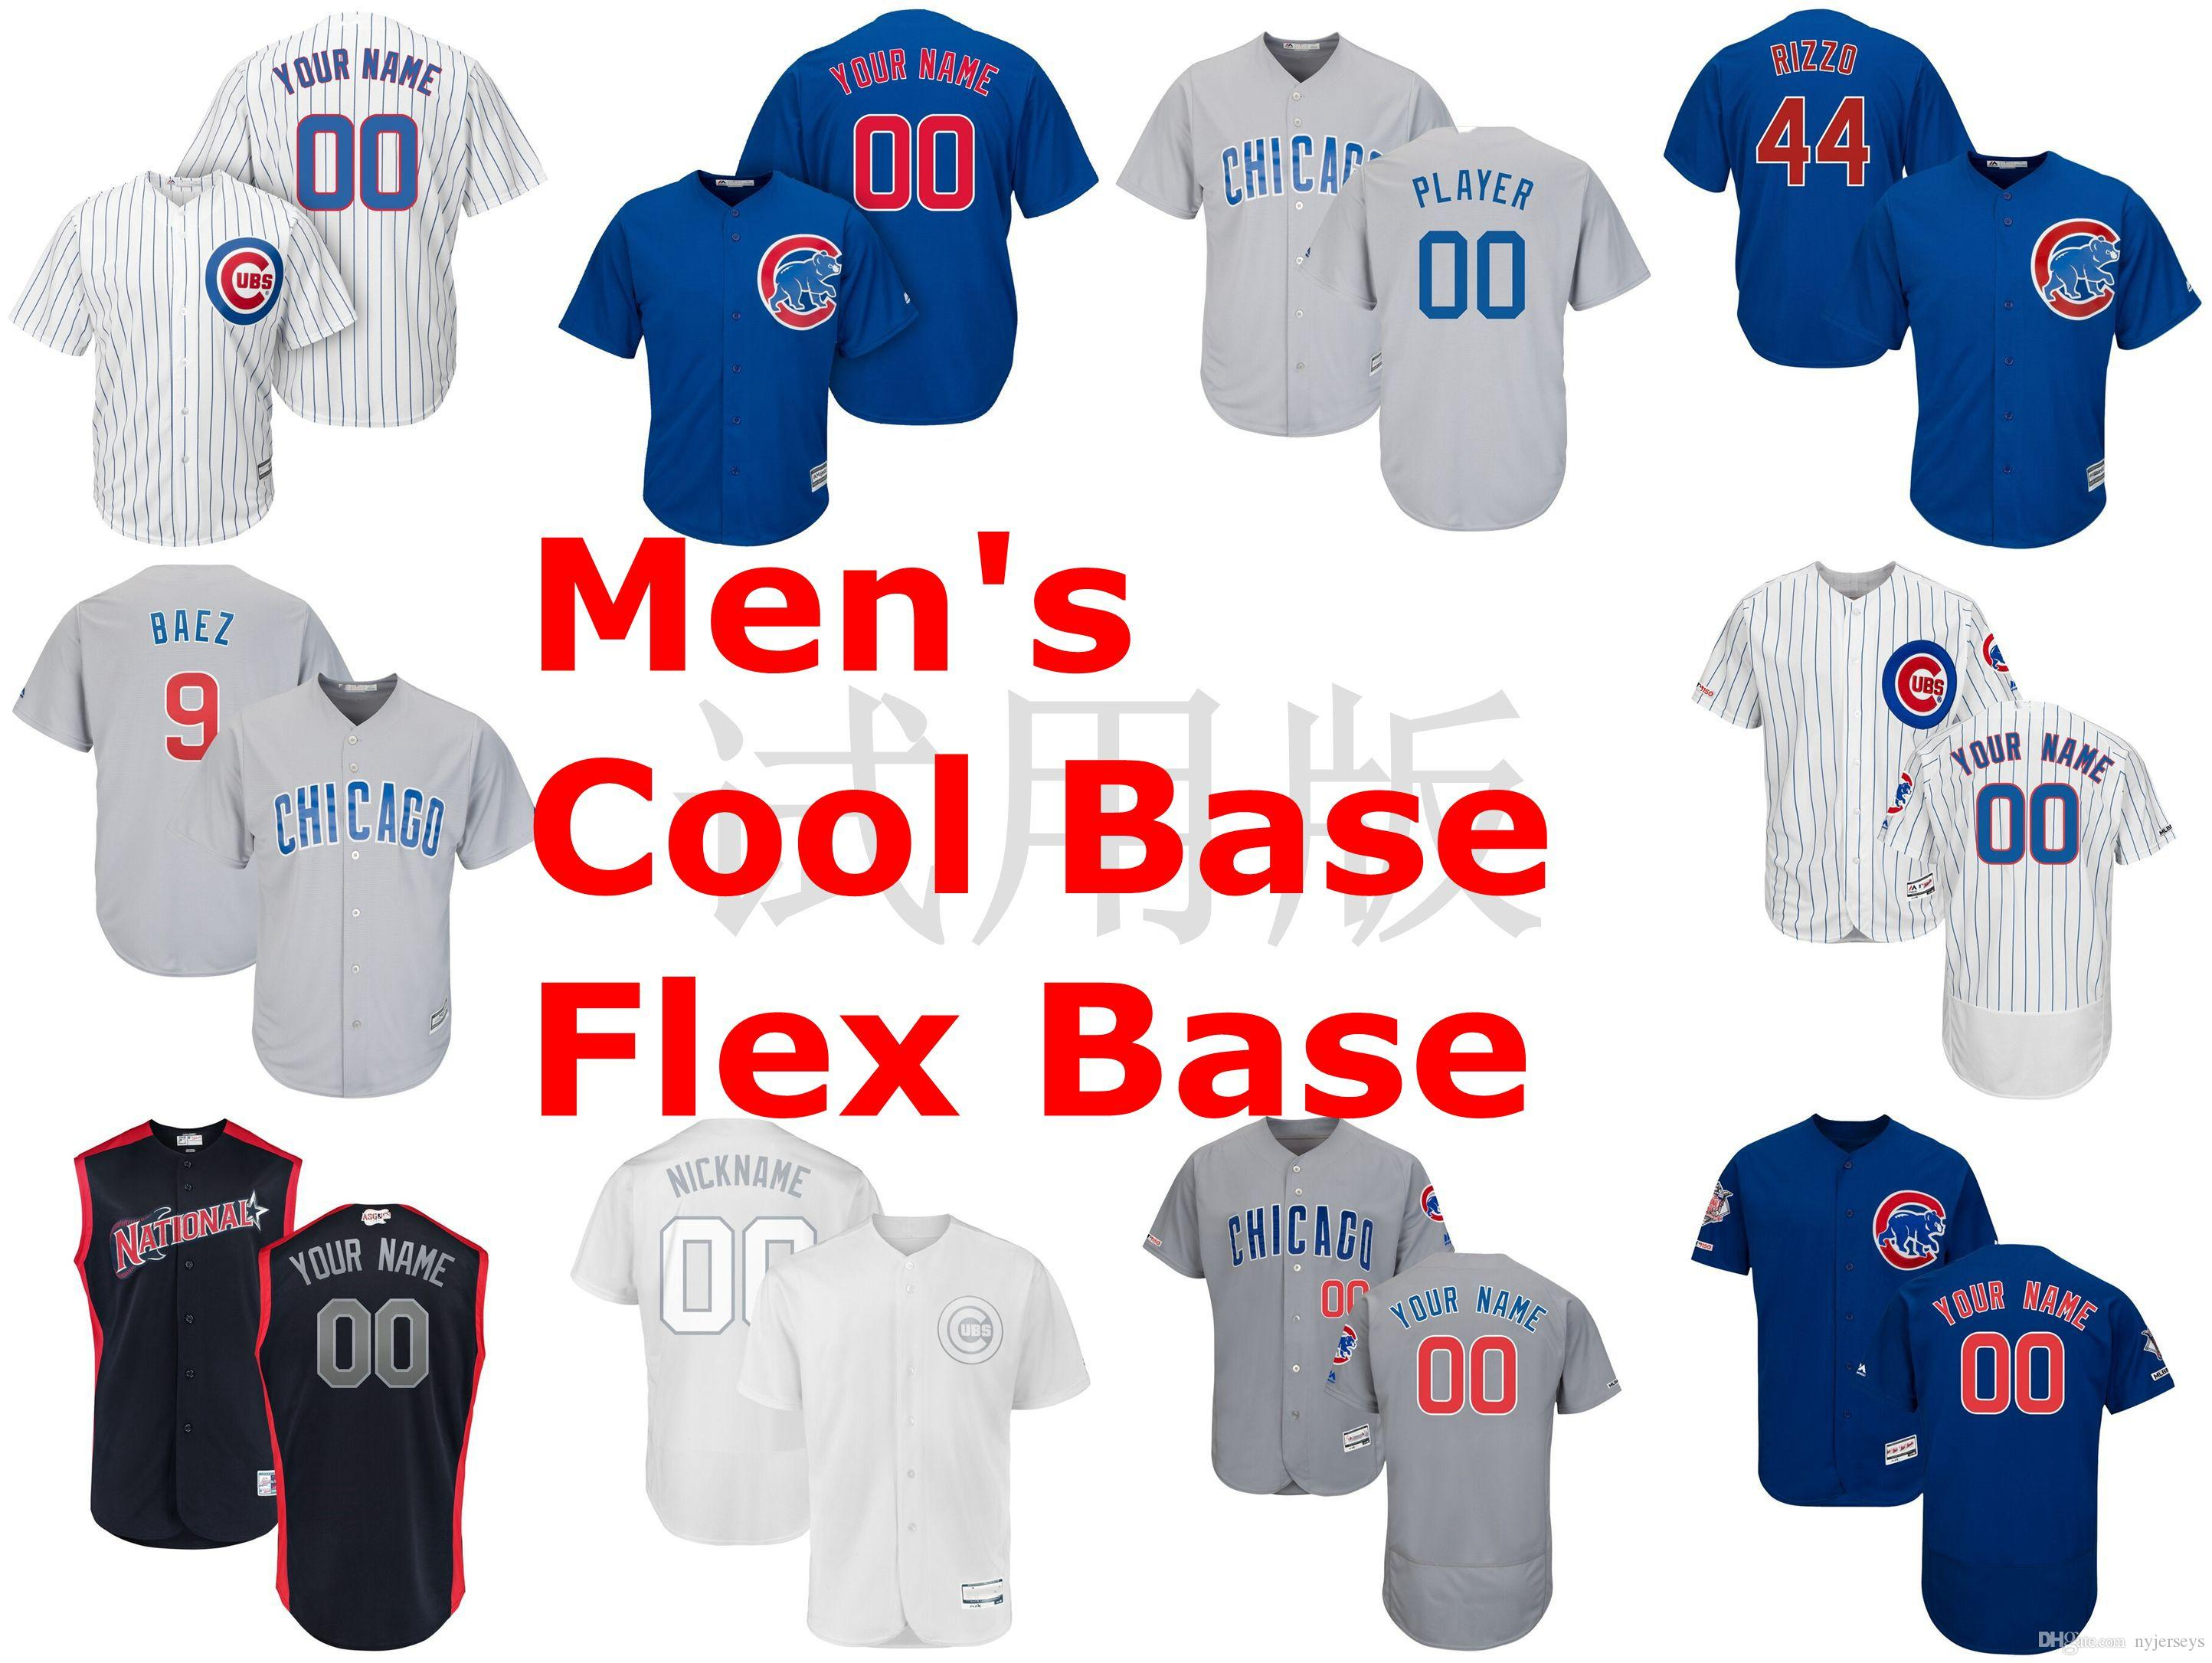 finest selection 5fcbb 147f9 Chicago Jerseys Cubs Javier Baez Jersey Anthony Rizzo Kris Bryant Ernie  Banks Willson Contreras Baseball Jerseys Custom Stitched Any Name